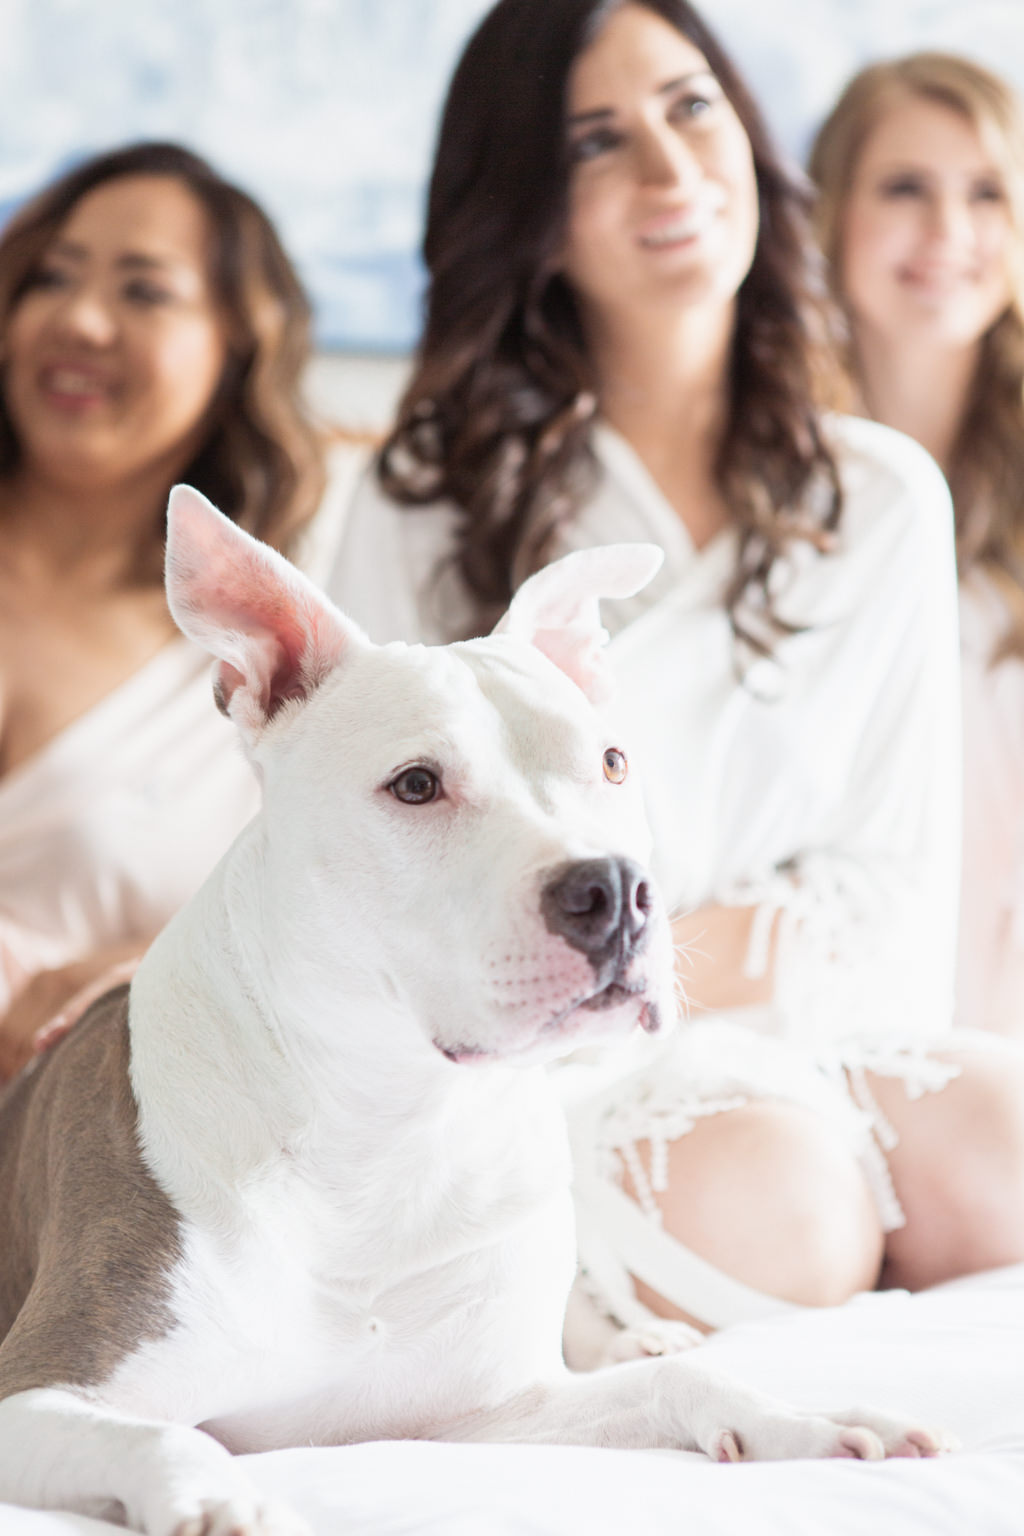 Tampa Bride, Bridesmaids in Matching Blush Pink Robes and Dog on Hotel Bed Getting Wedding Ready Portrait   Wedding Hair and Makeup Femme Akoi   Wedding Pet Planner FairyTail Pet Care